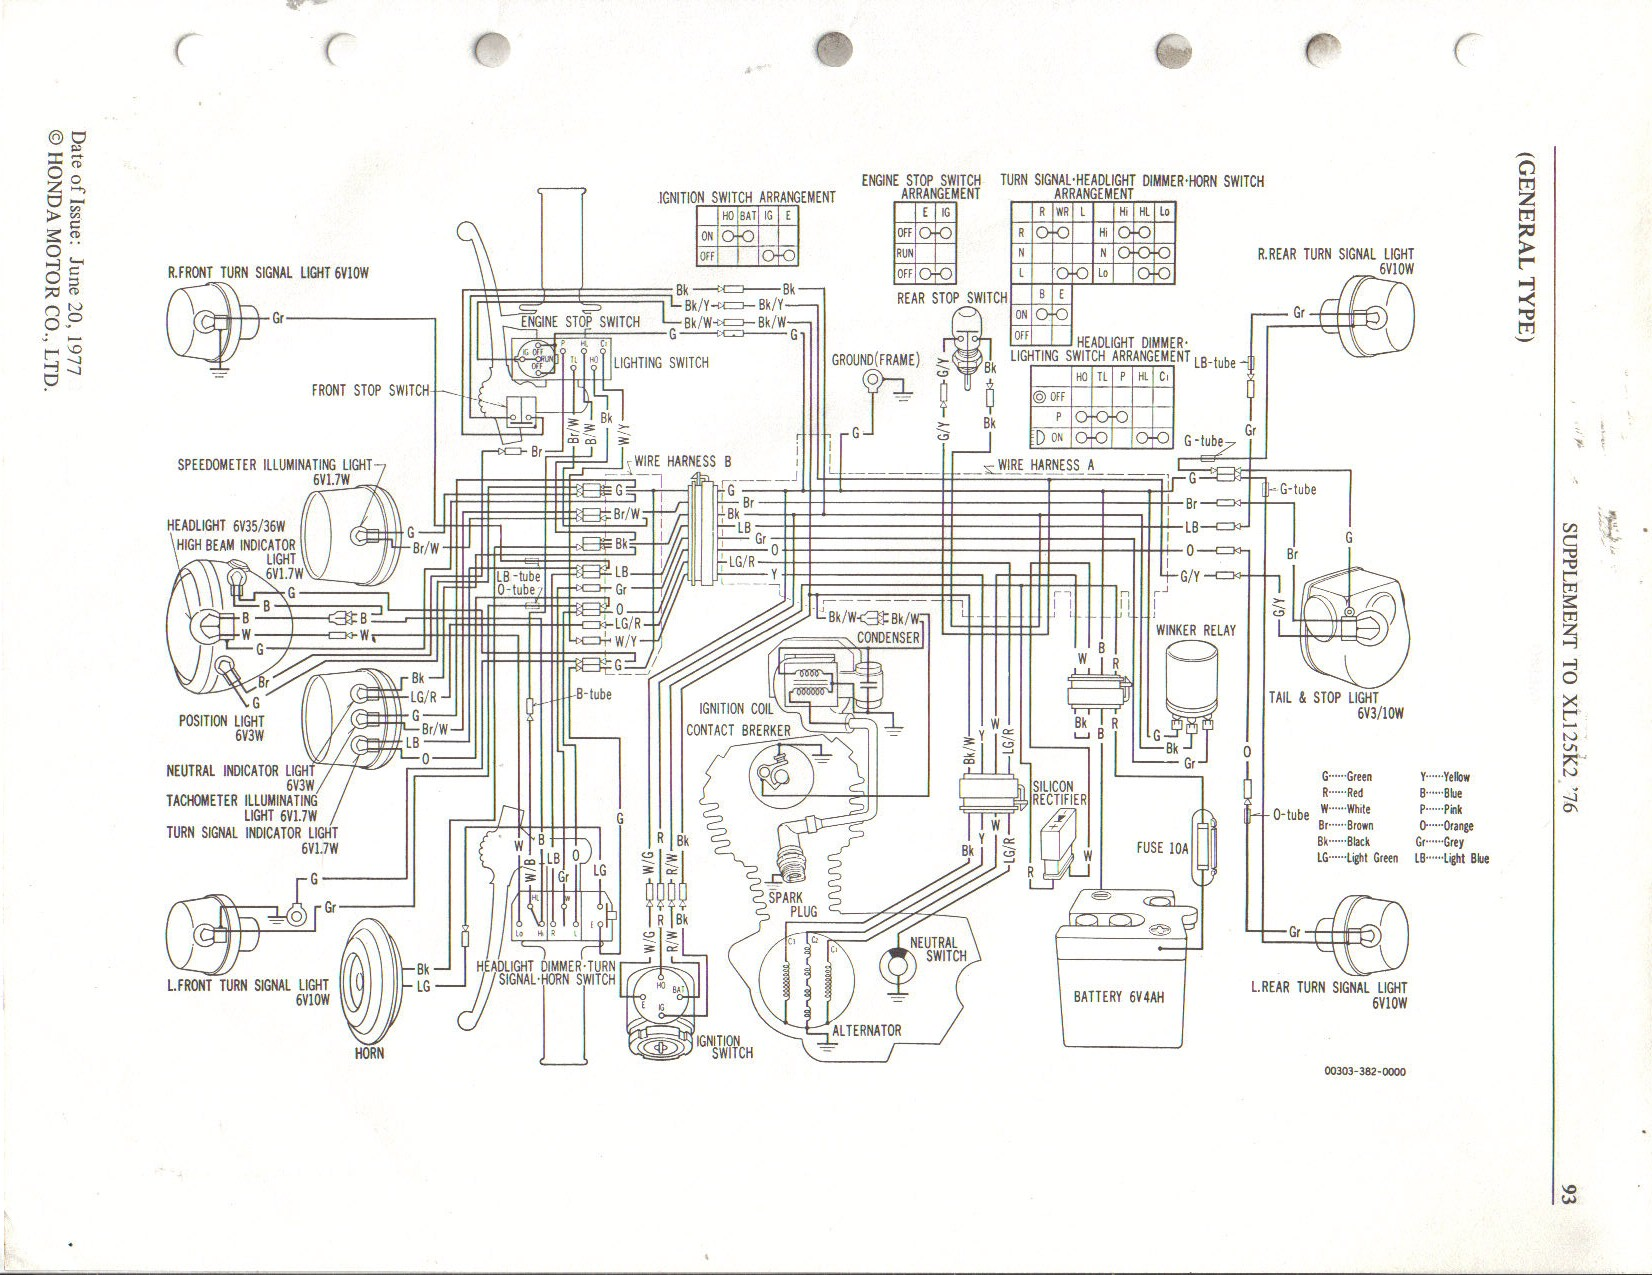 58184d1432028967 charging system mod xl125k2 76 general charging system mod page 6 1978 honda xl 125 wiring diagram at readyjetset.co